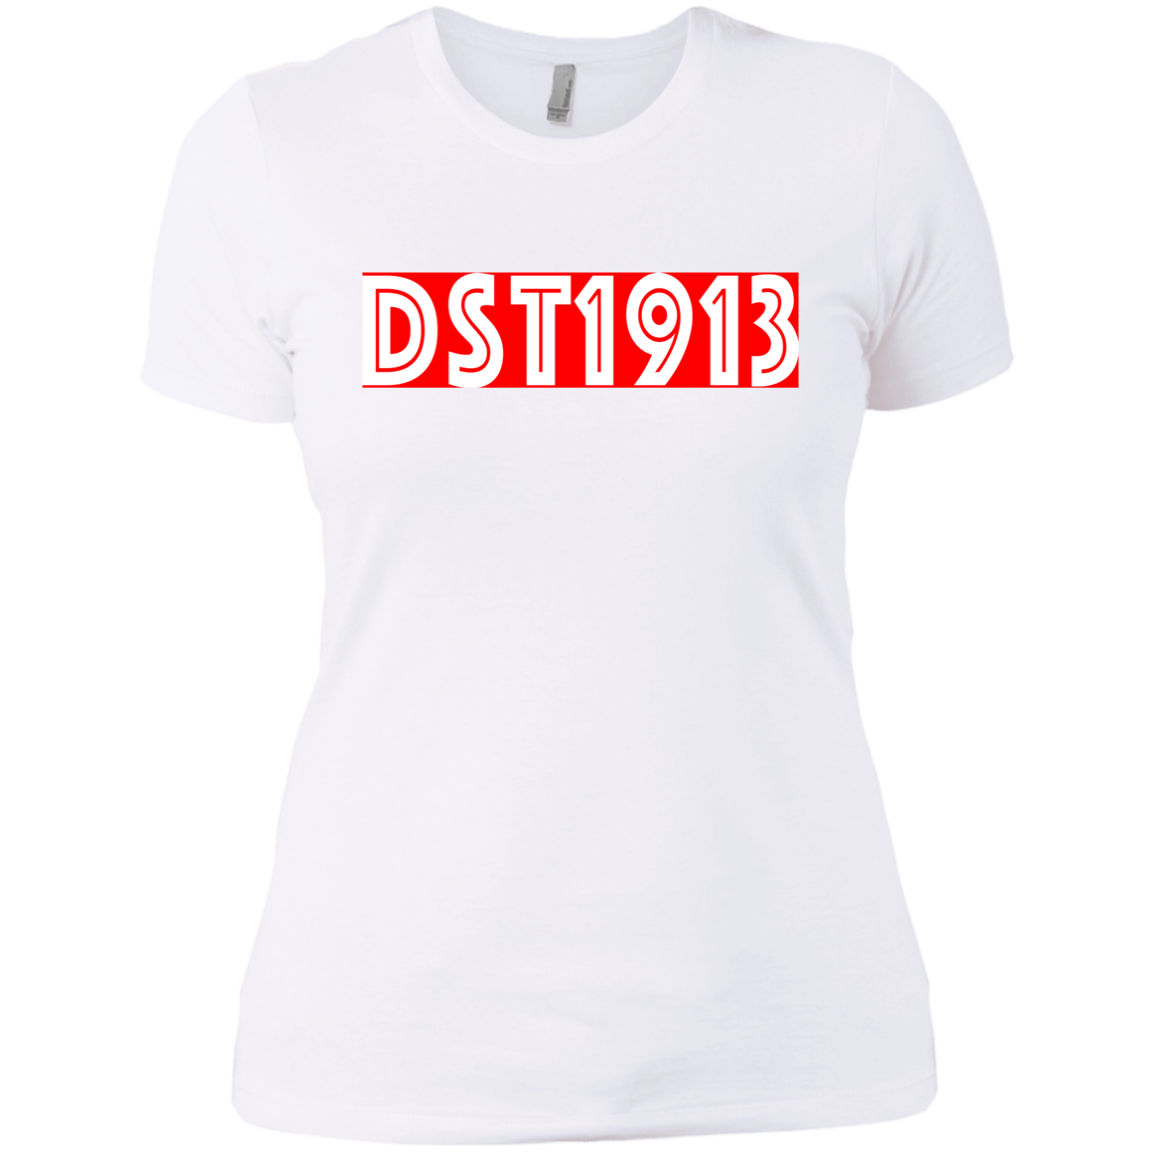 DST1913 Slim Fit